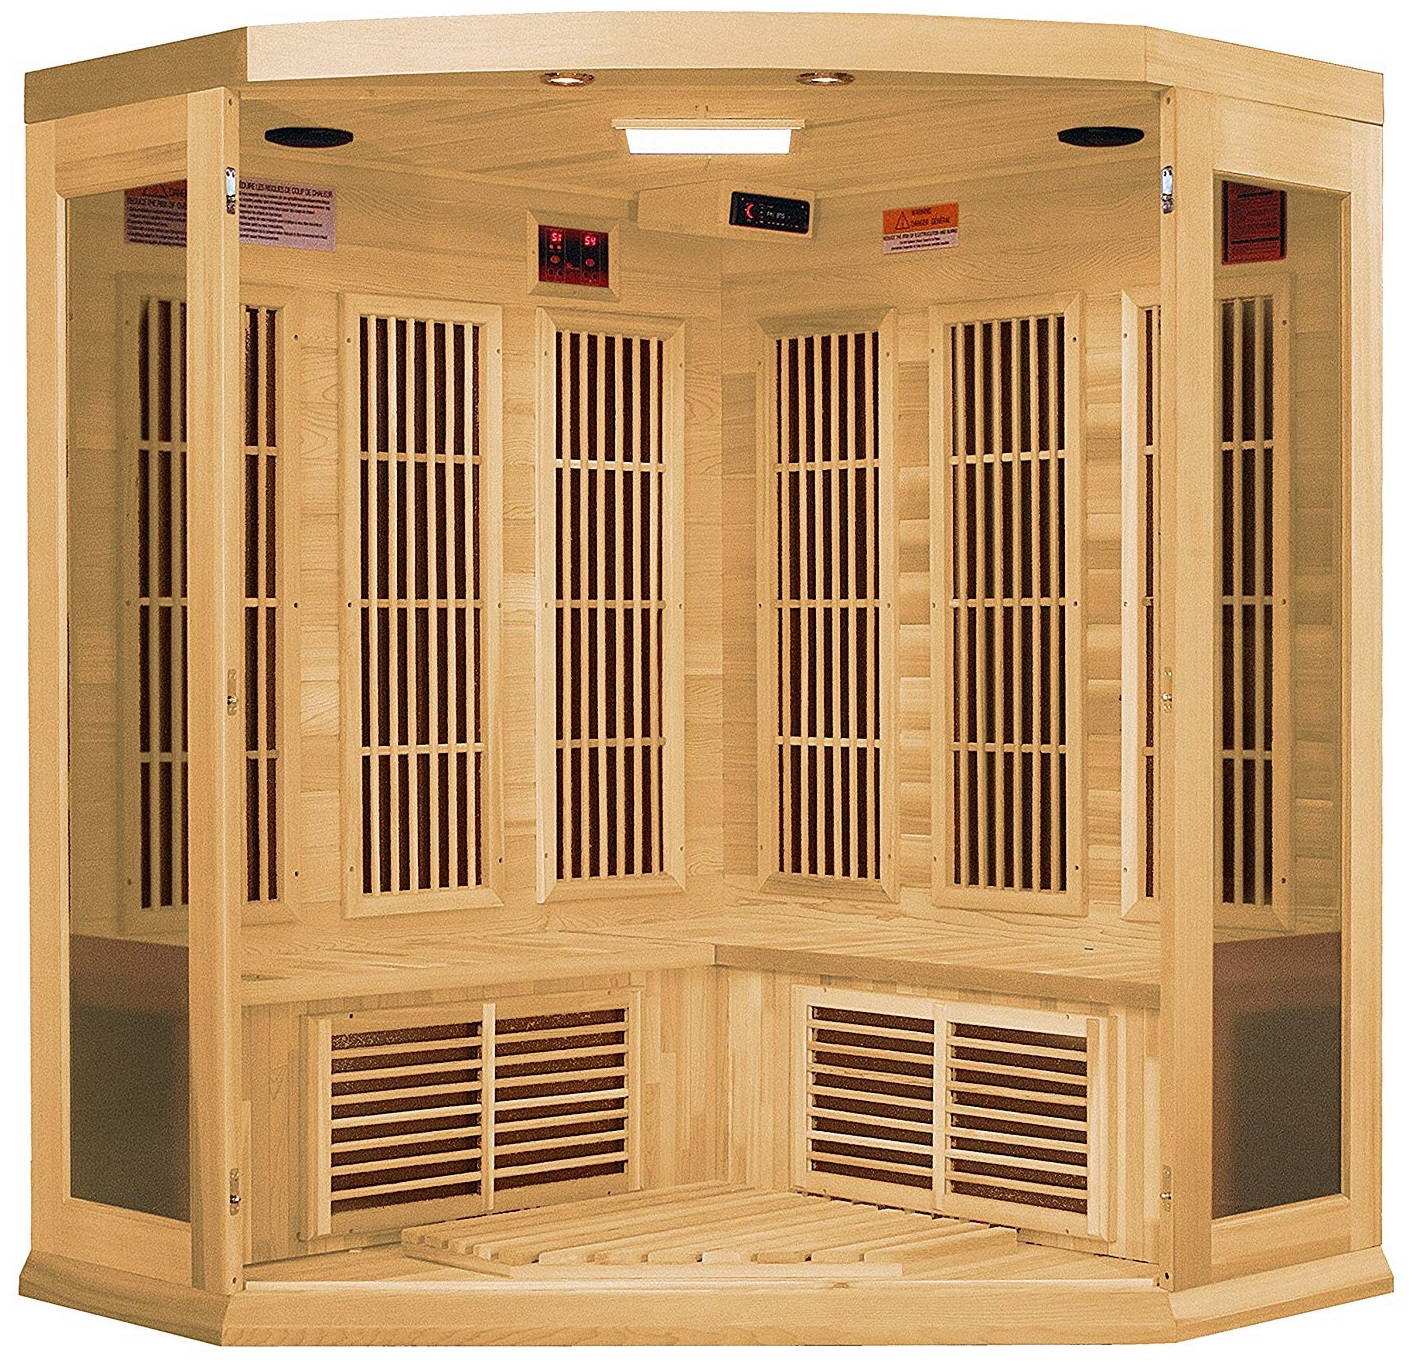 Best Far Infrared Sauna Reviews